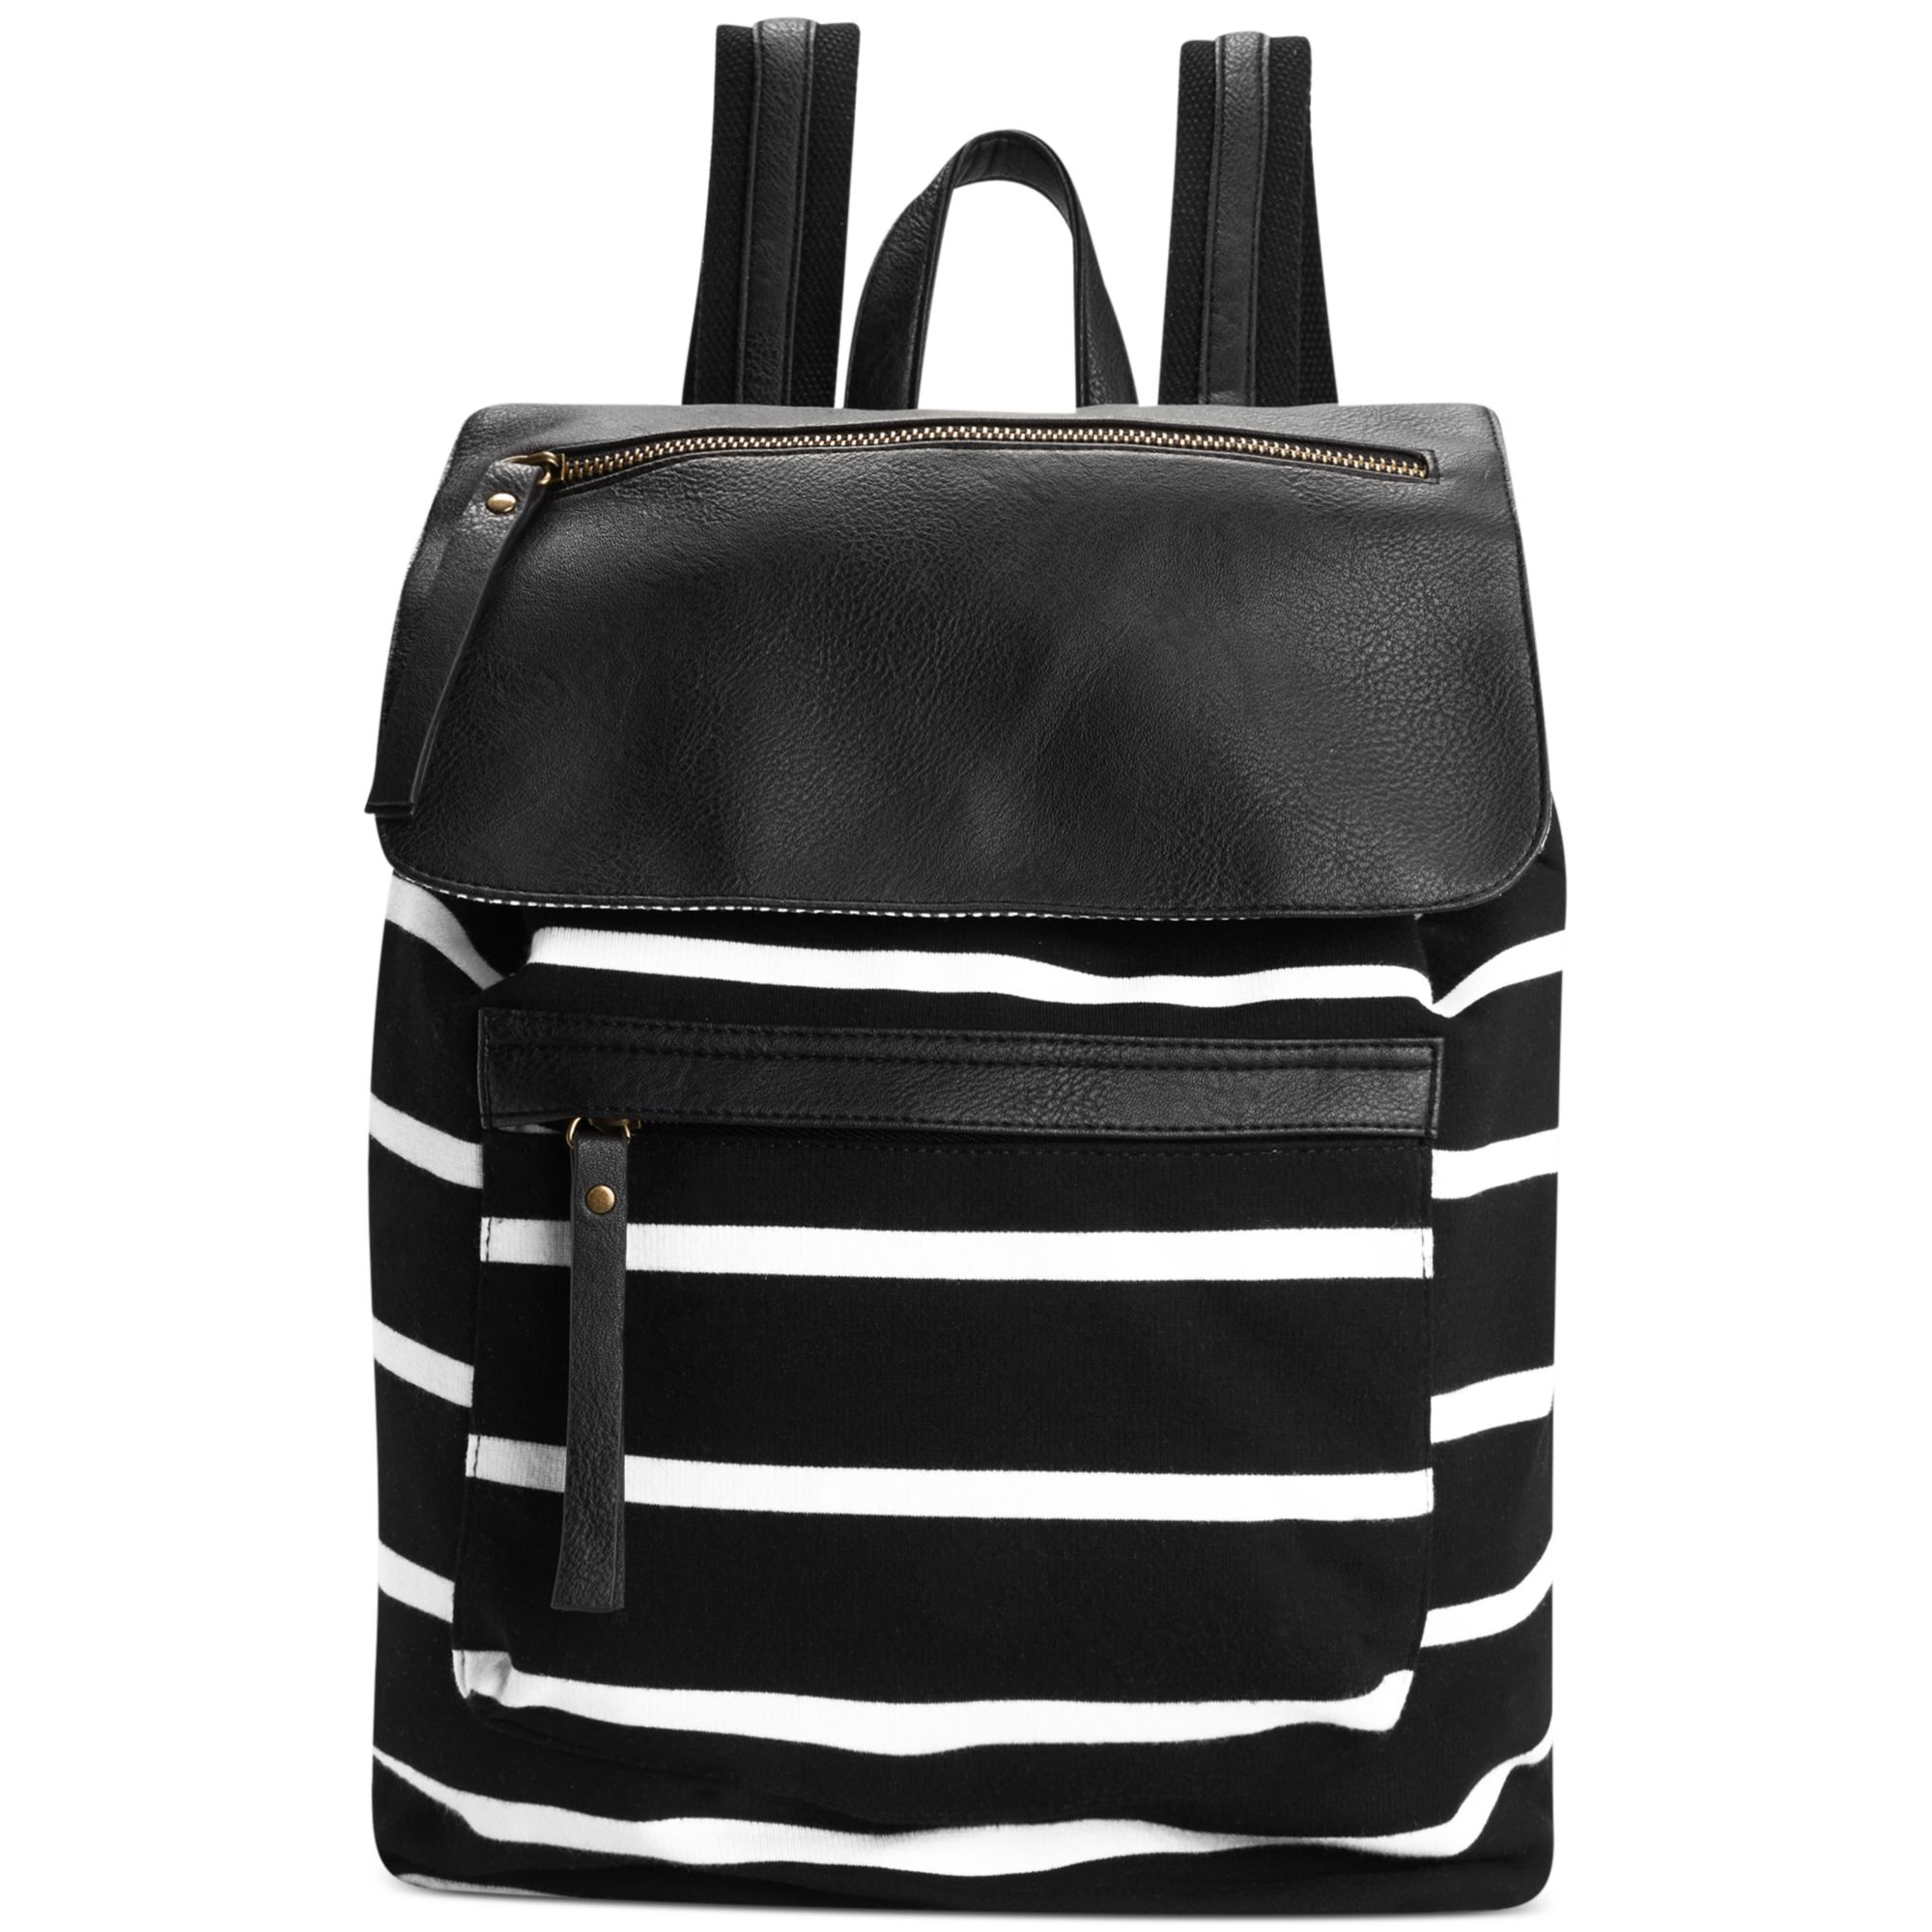 Madden girl Posey Backpack in White | Lyst